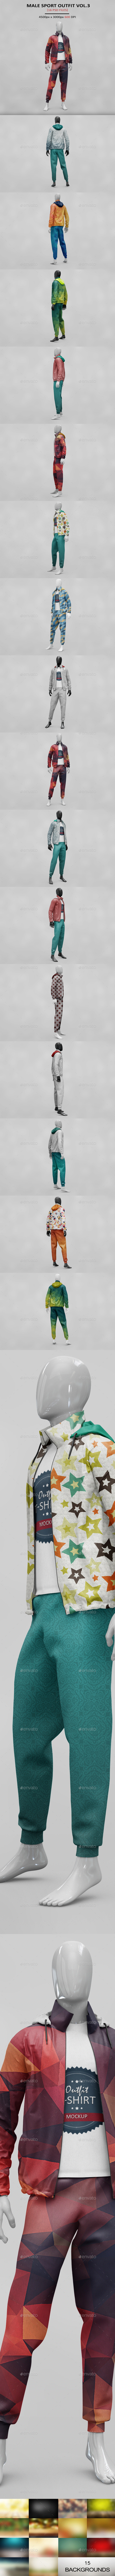 Male Outfit MockUp Vol. 2 - Product Mock-Ups Graphics